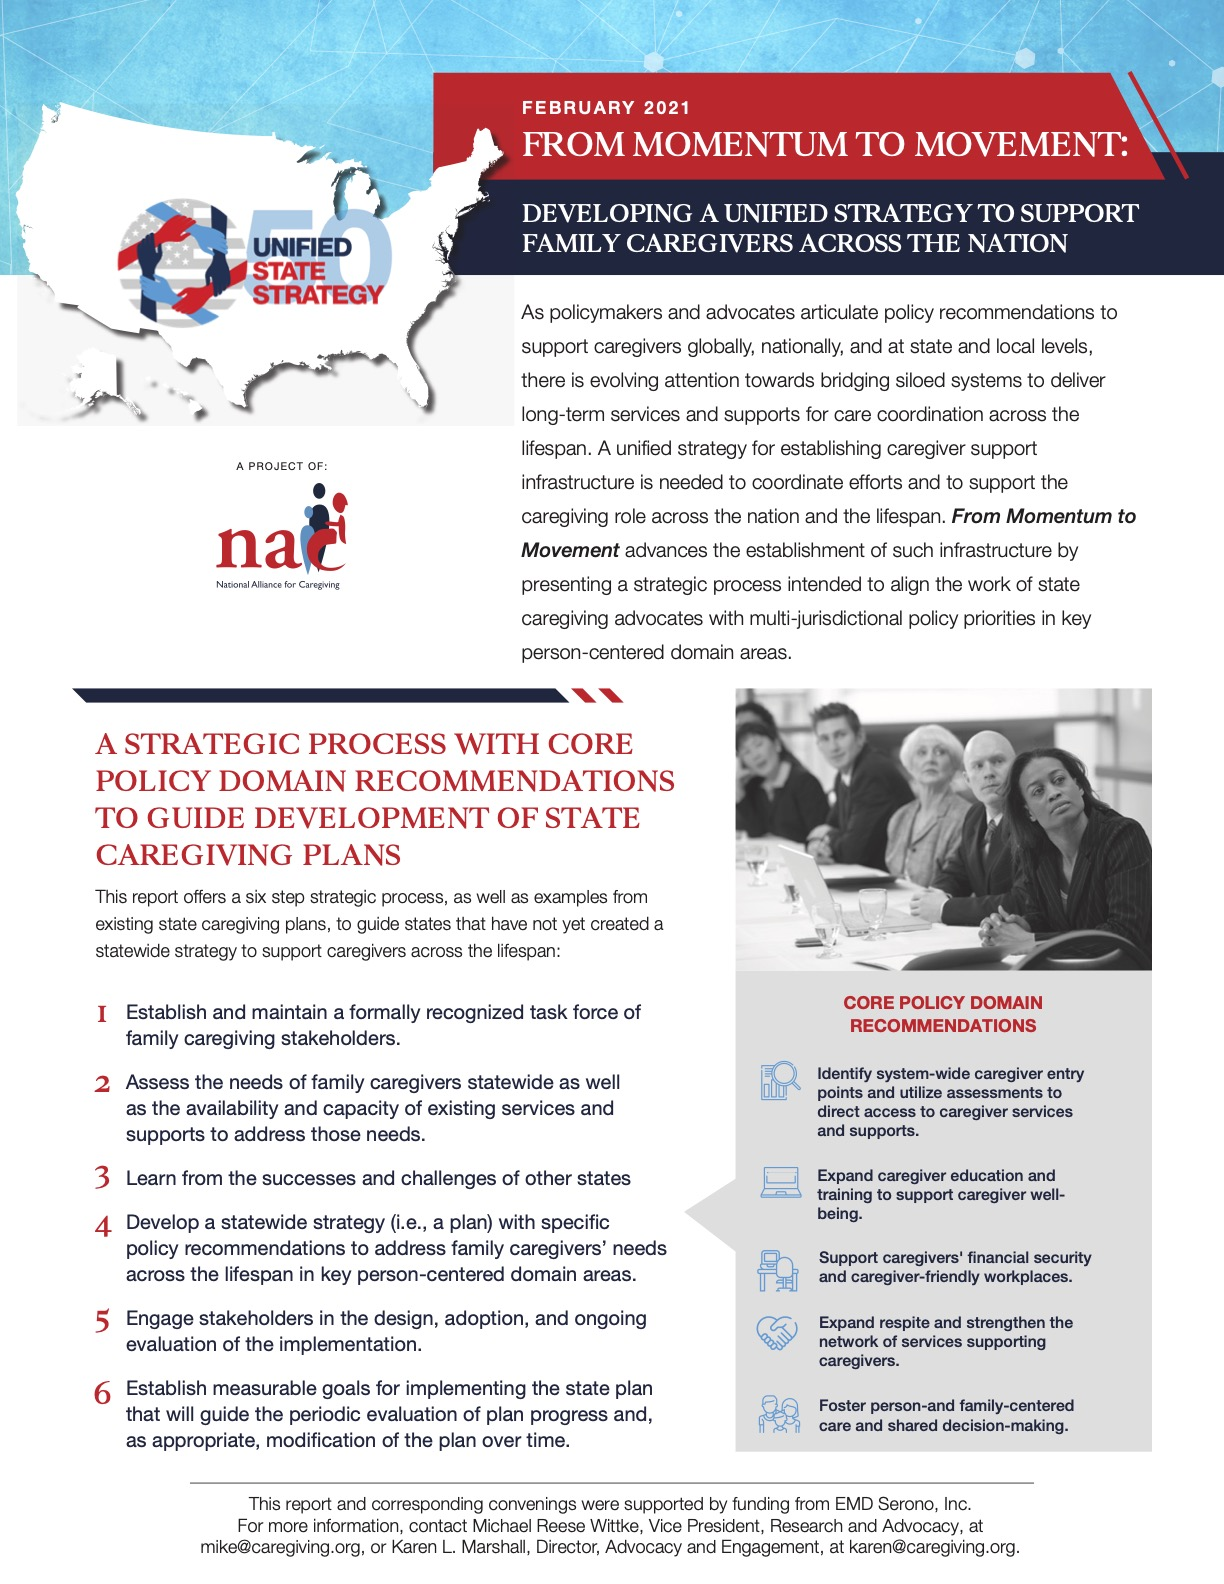 National Alliance for Caregiving Unified 50 State Strategy In a Nutshell